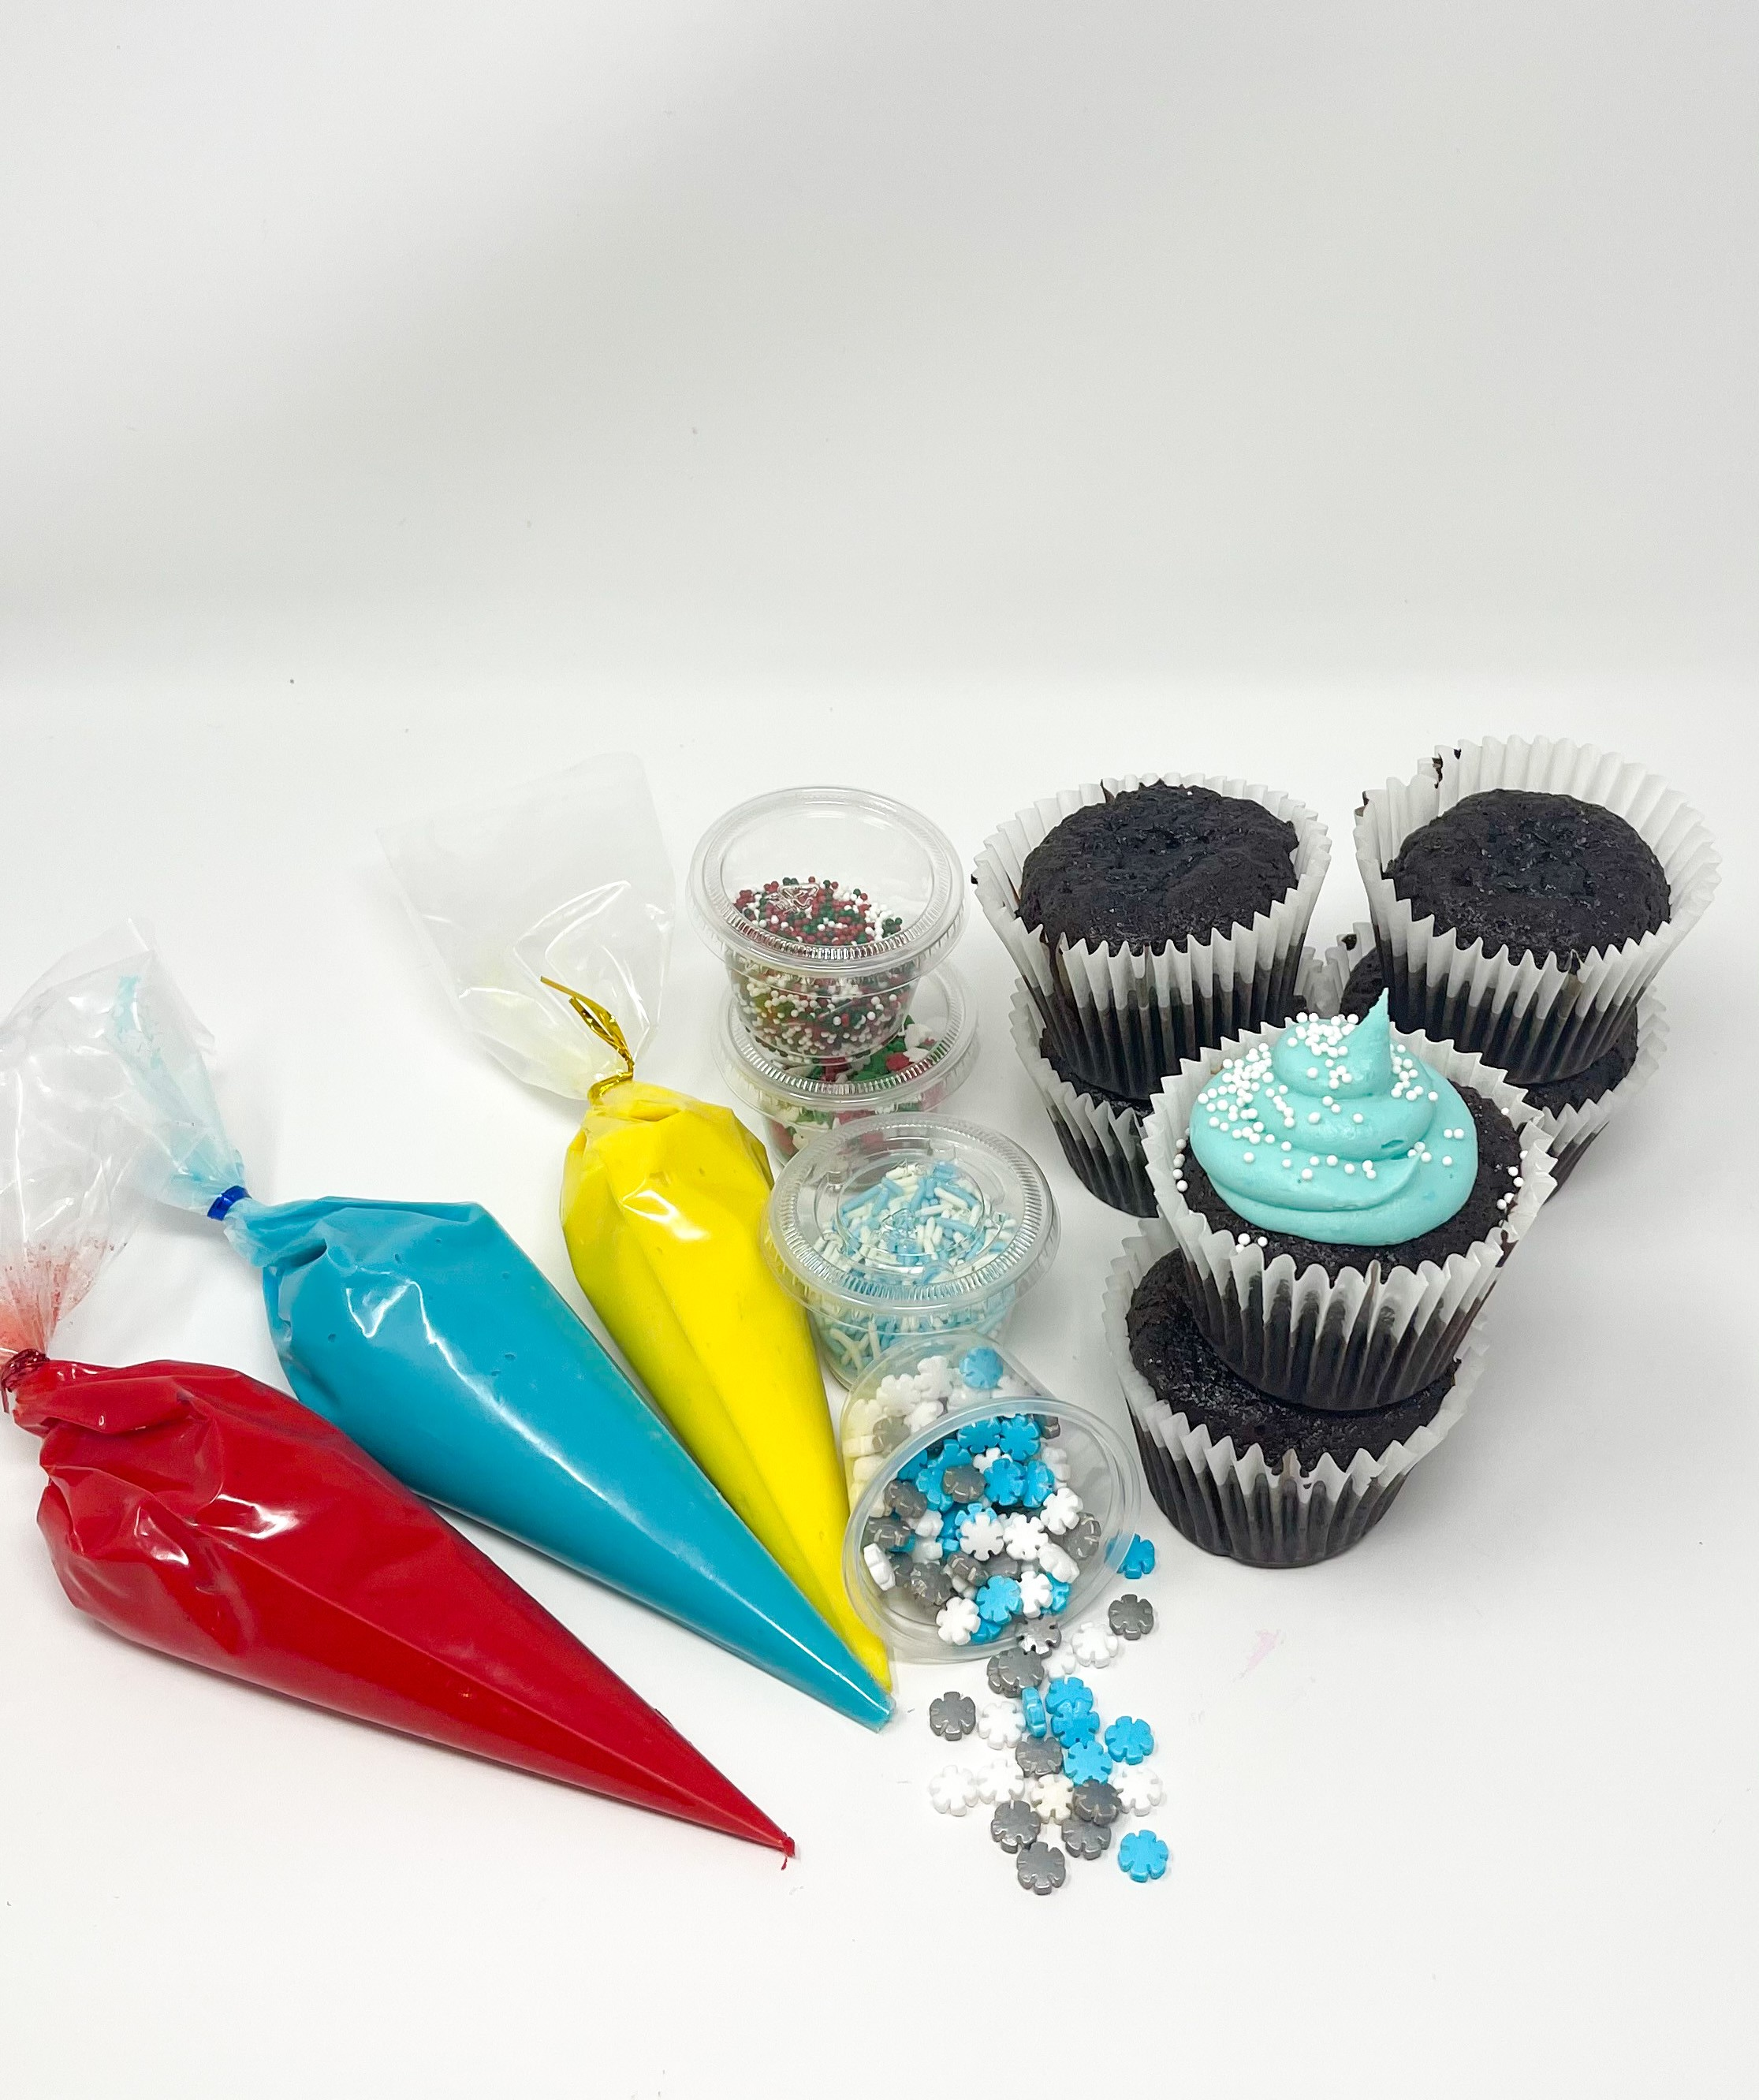 Decorate Your Own Cupcake Kit